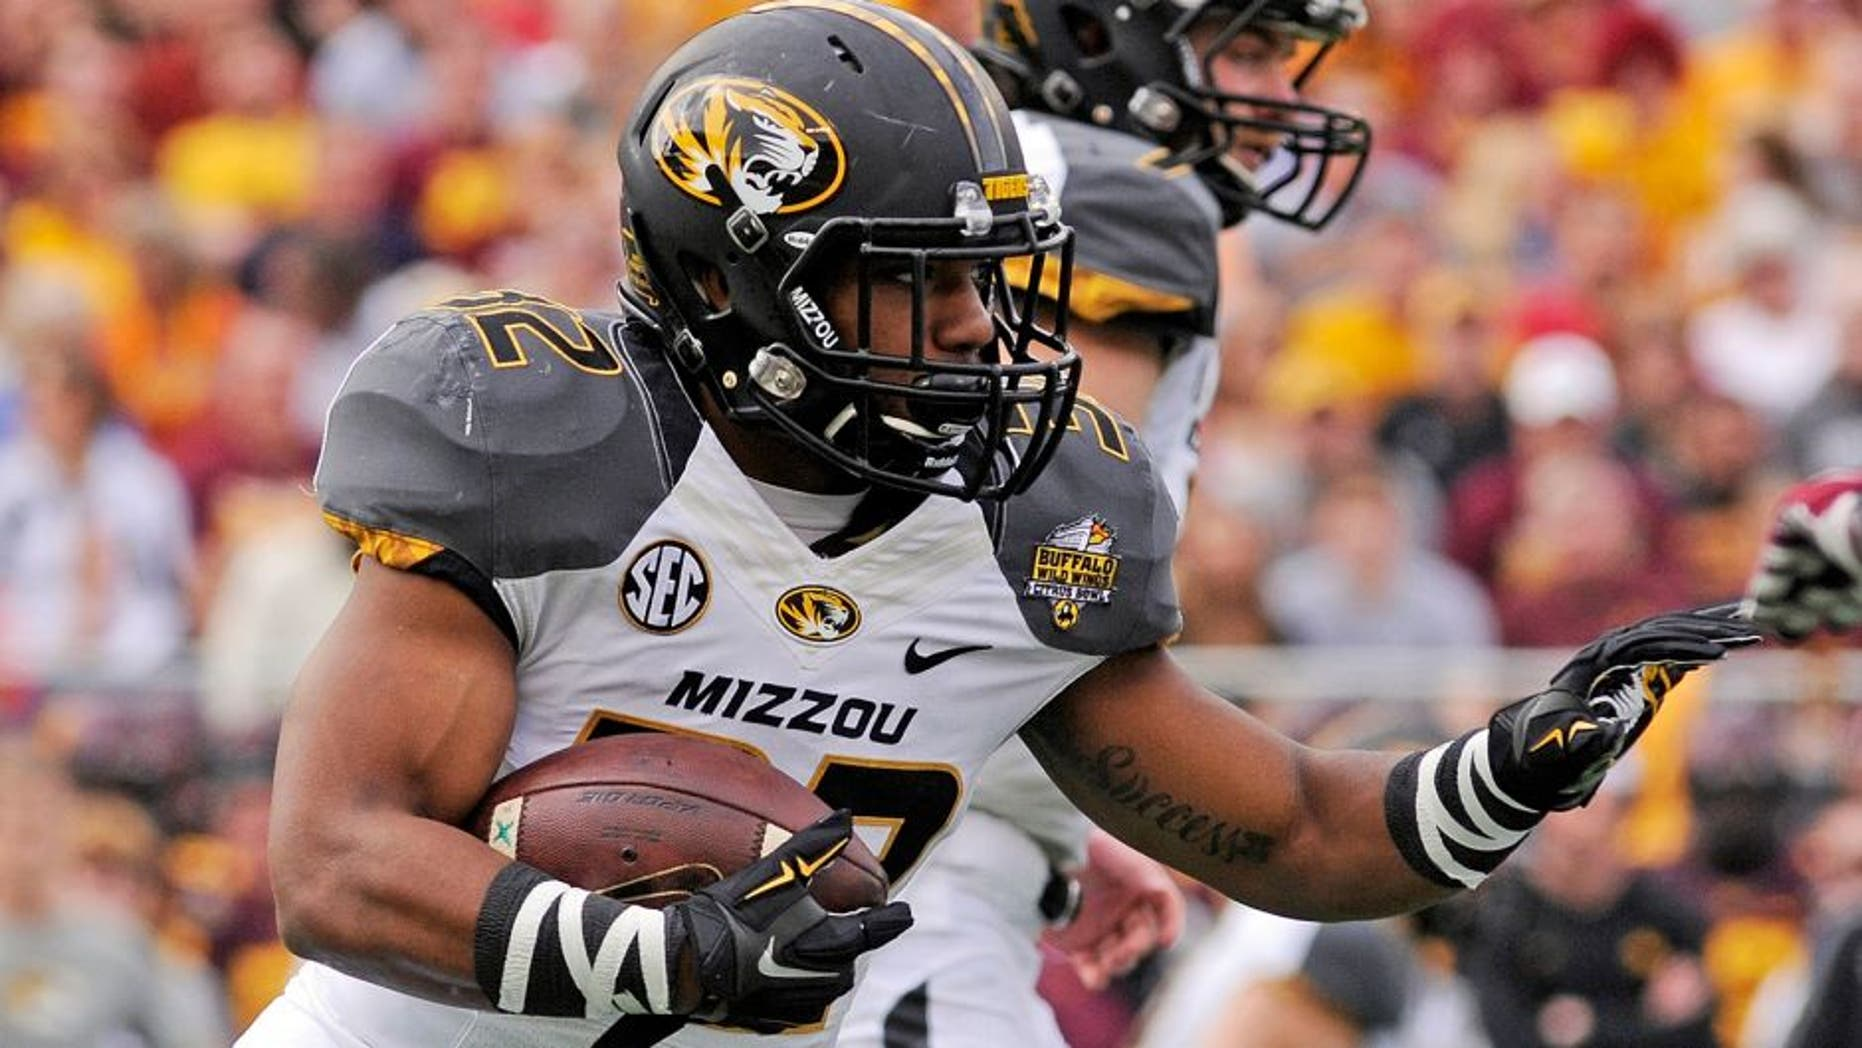 Jan 1, 2015; Orlando, FL, USA; Missouri Tigers running back Russell Hansbrough (32) runs the ball against the Minnesota Golden Gophers in the first quarter of the 2015 Citrus Bowl at Florida Citrus Bowl. Mandatory Credit: David Manning-USA TODAY Sports